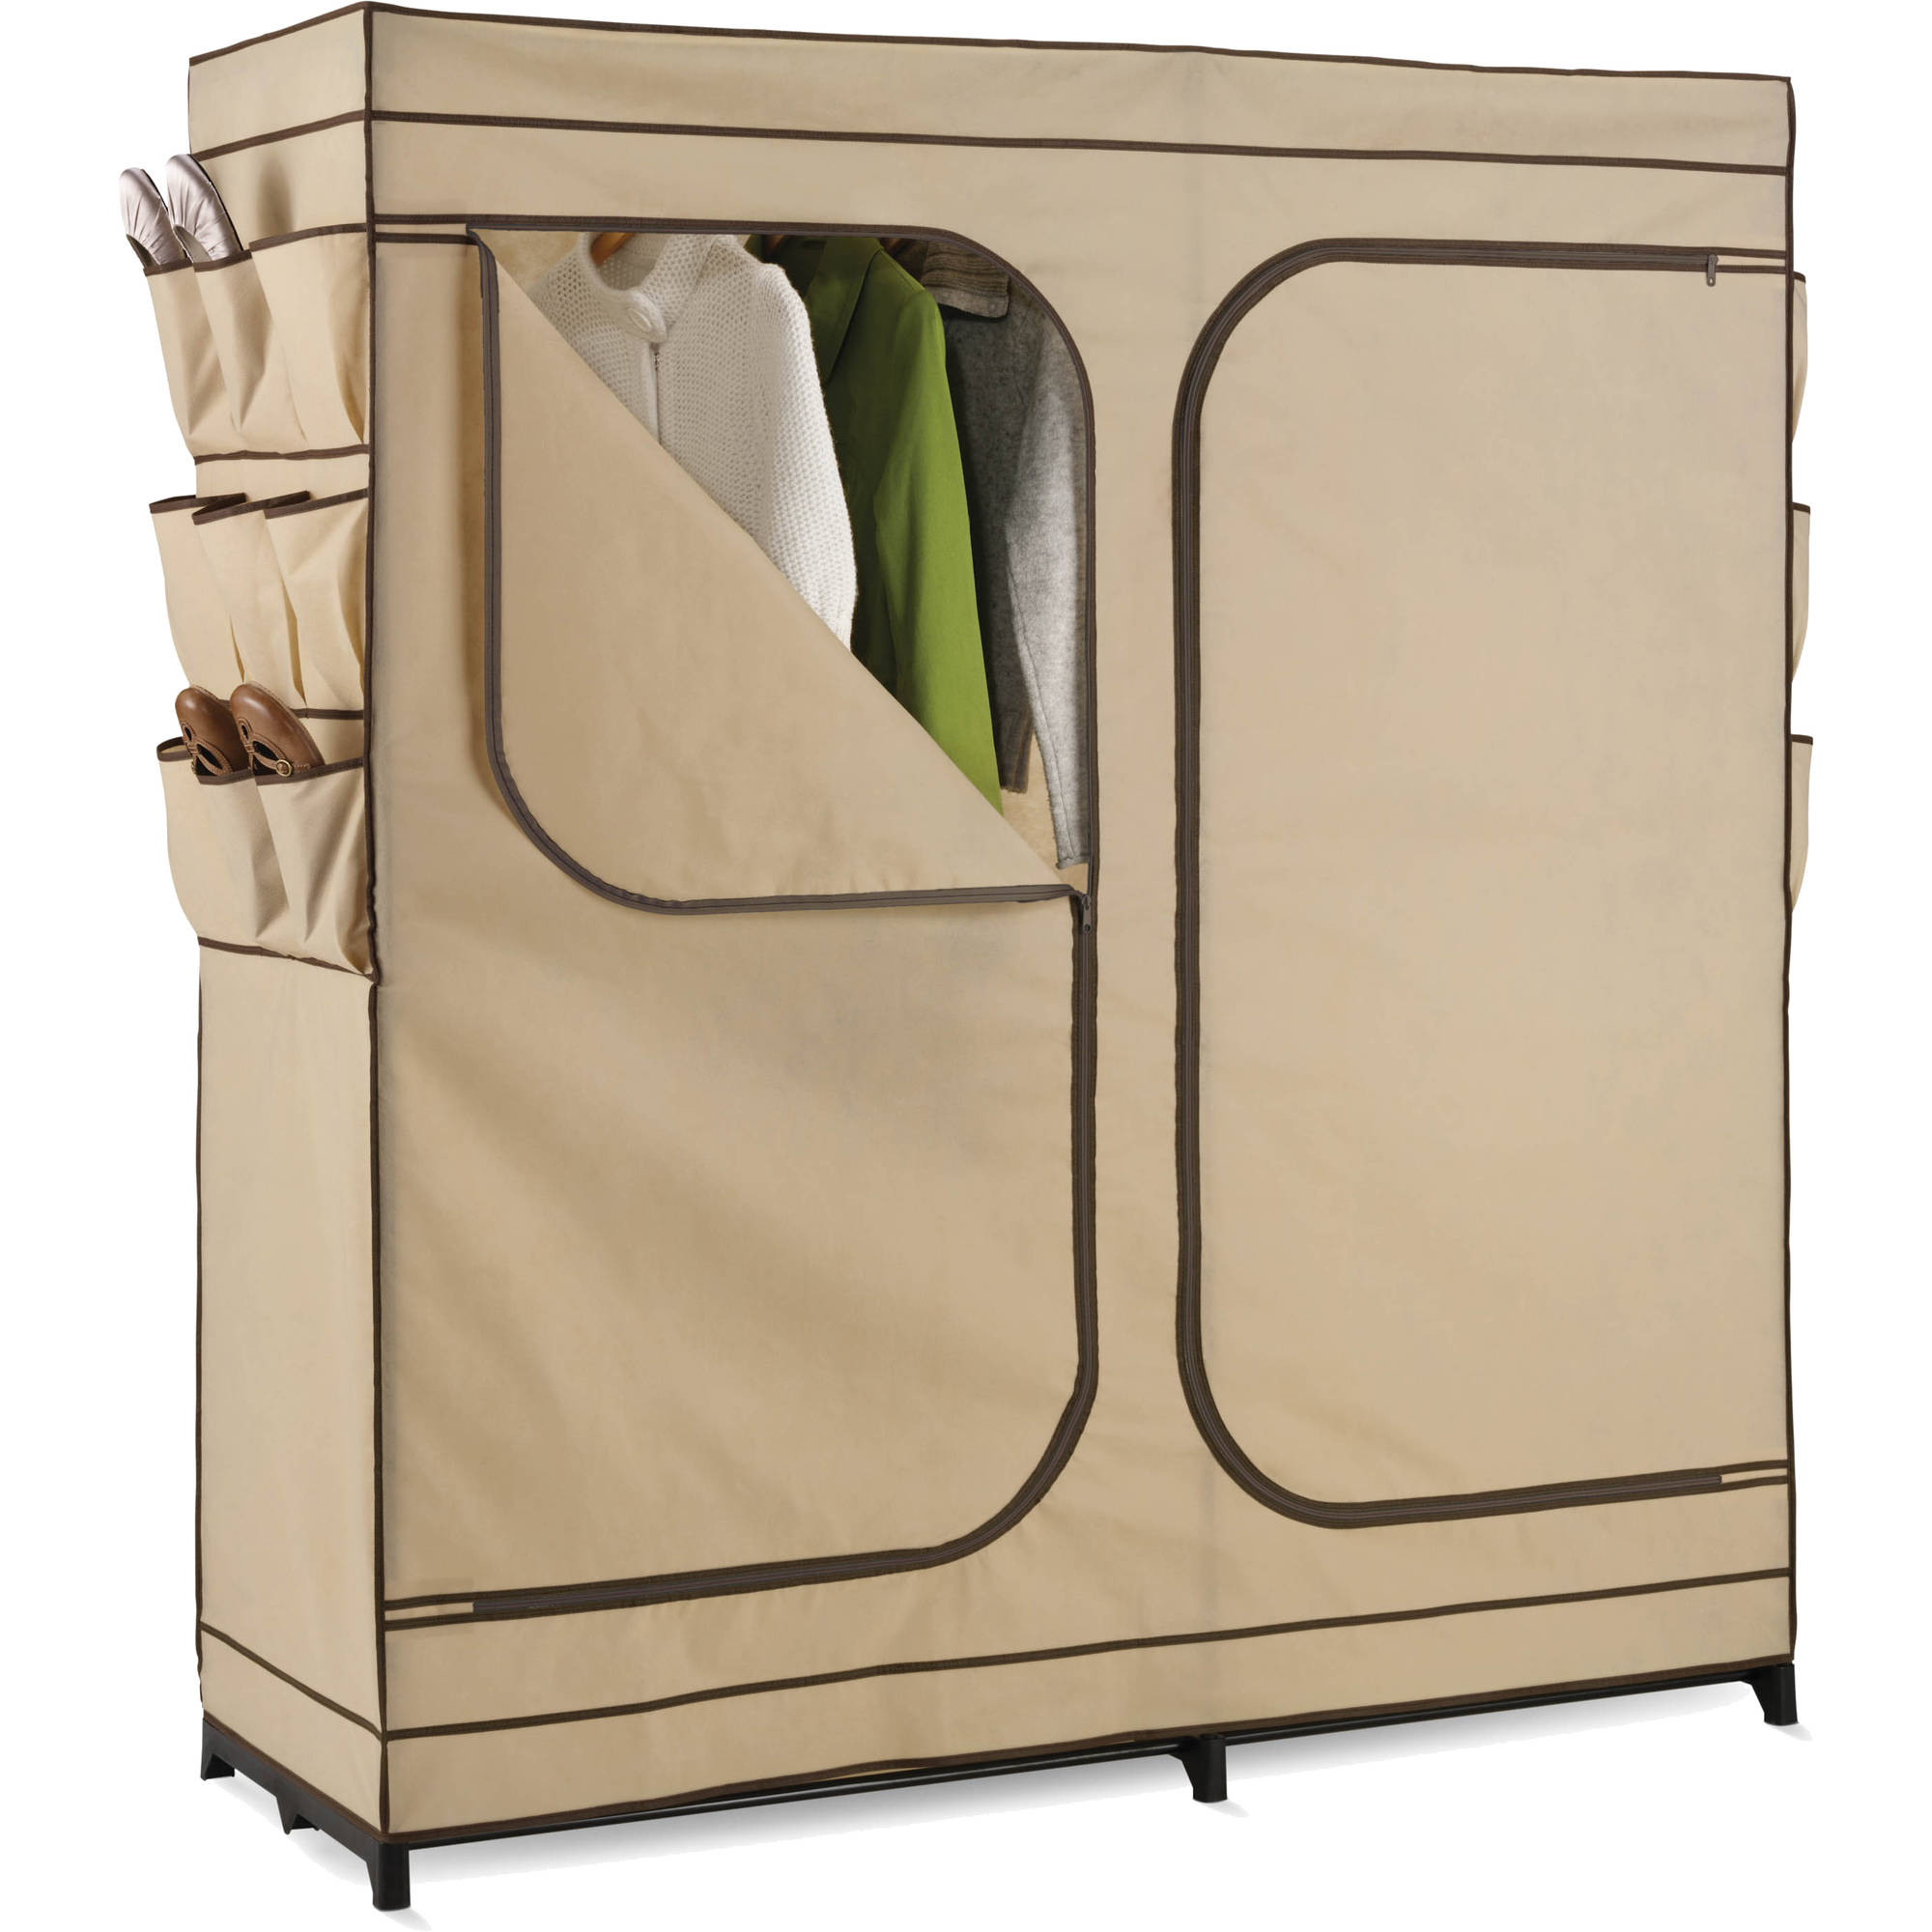 "Honey Can Do 60"" 2-Door Closet Storage with Shoe Organizer, Khaki/Brown"